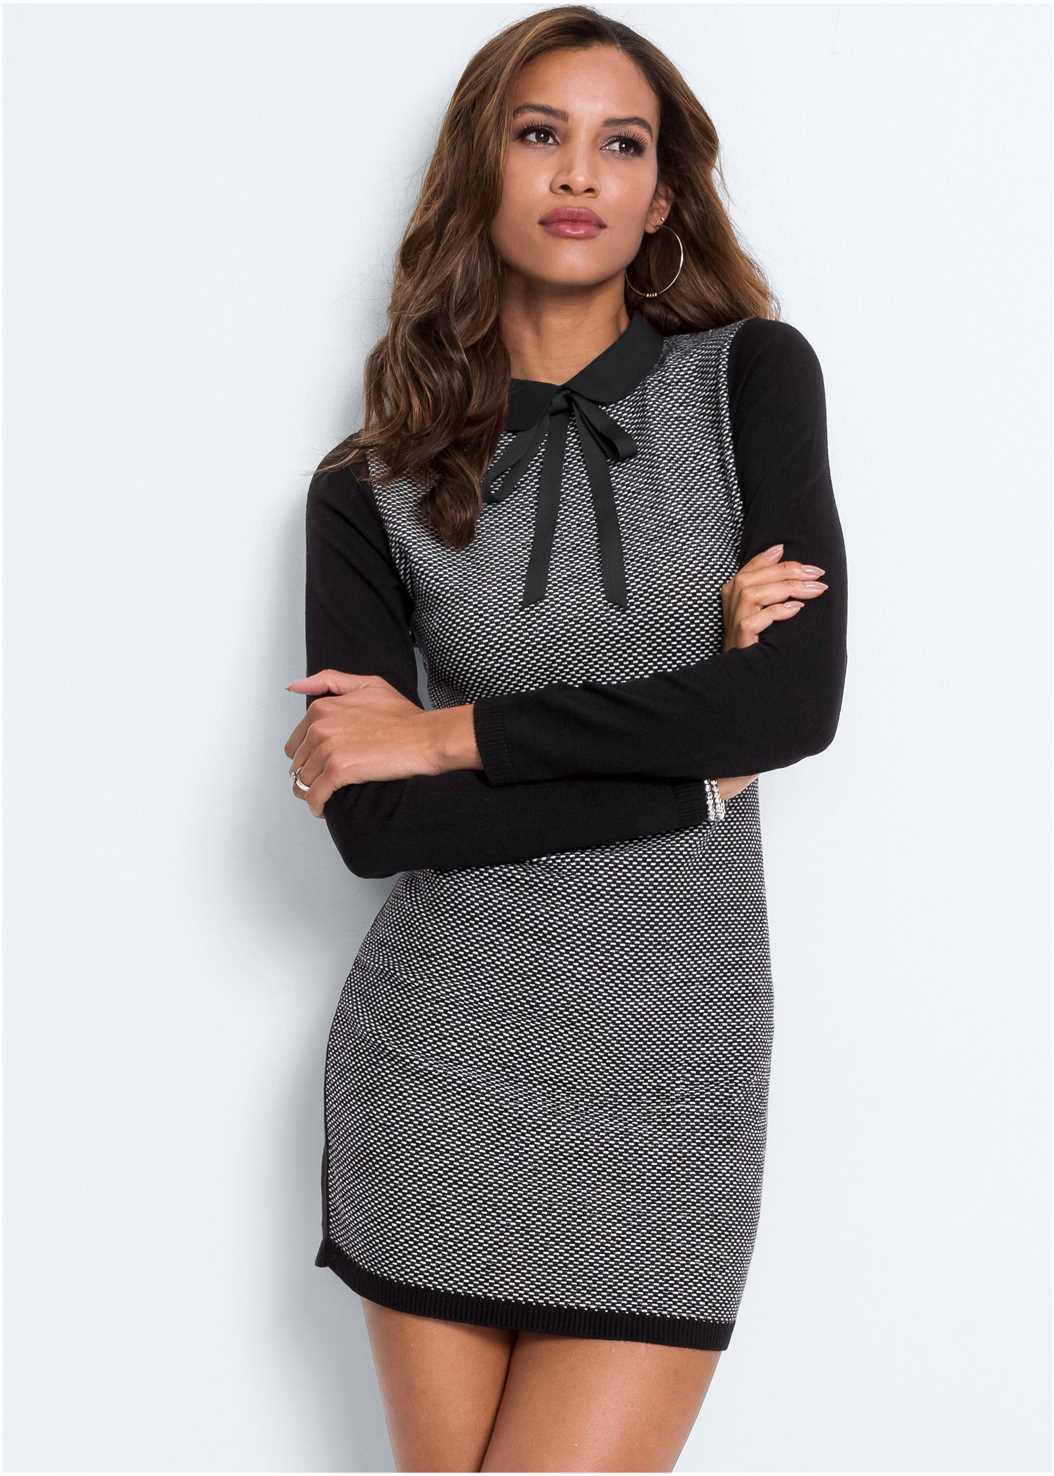 Bow Detail Sweater Dress,Memory Foam Demi Bra,Knotted Slouchy Boots